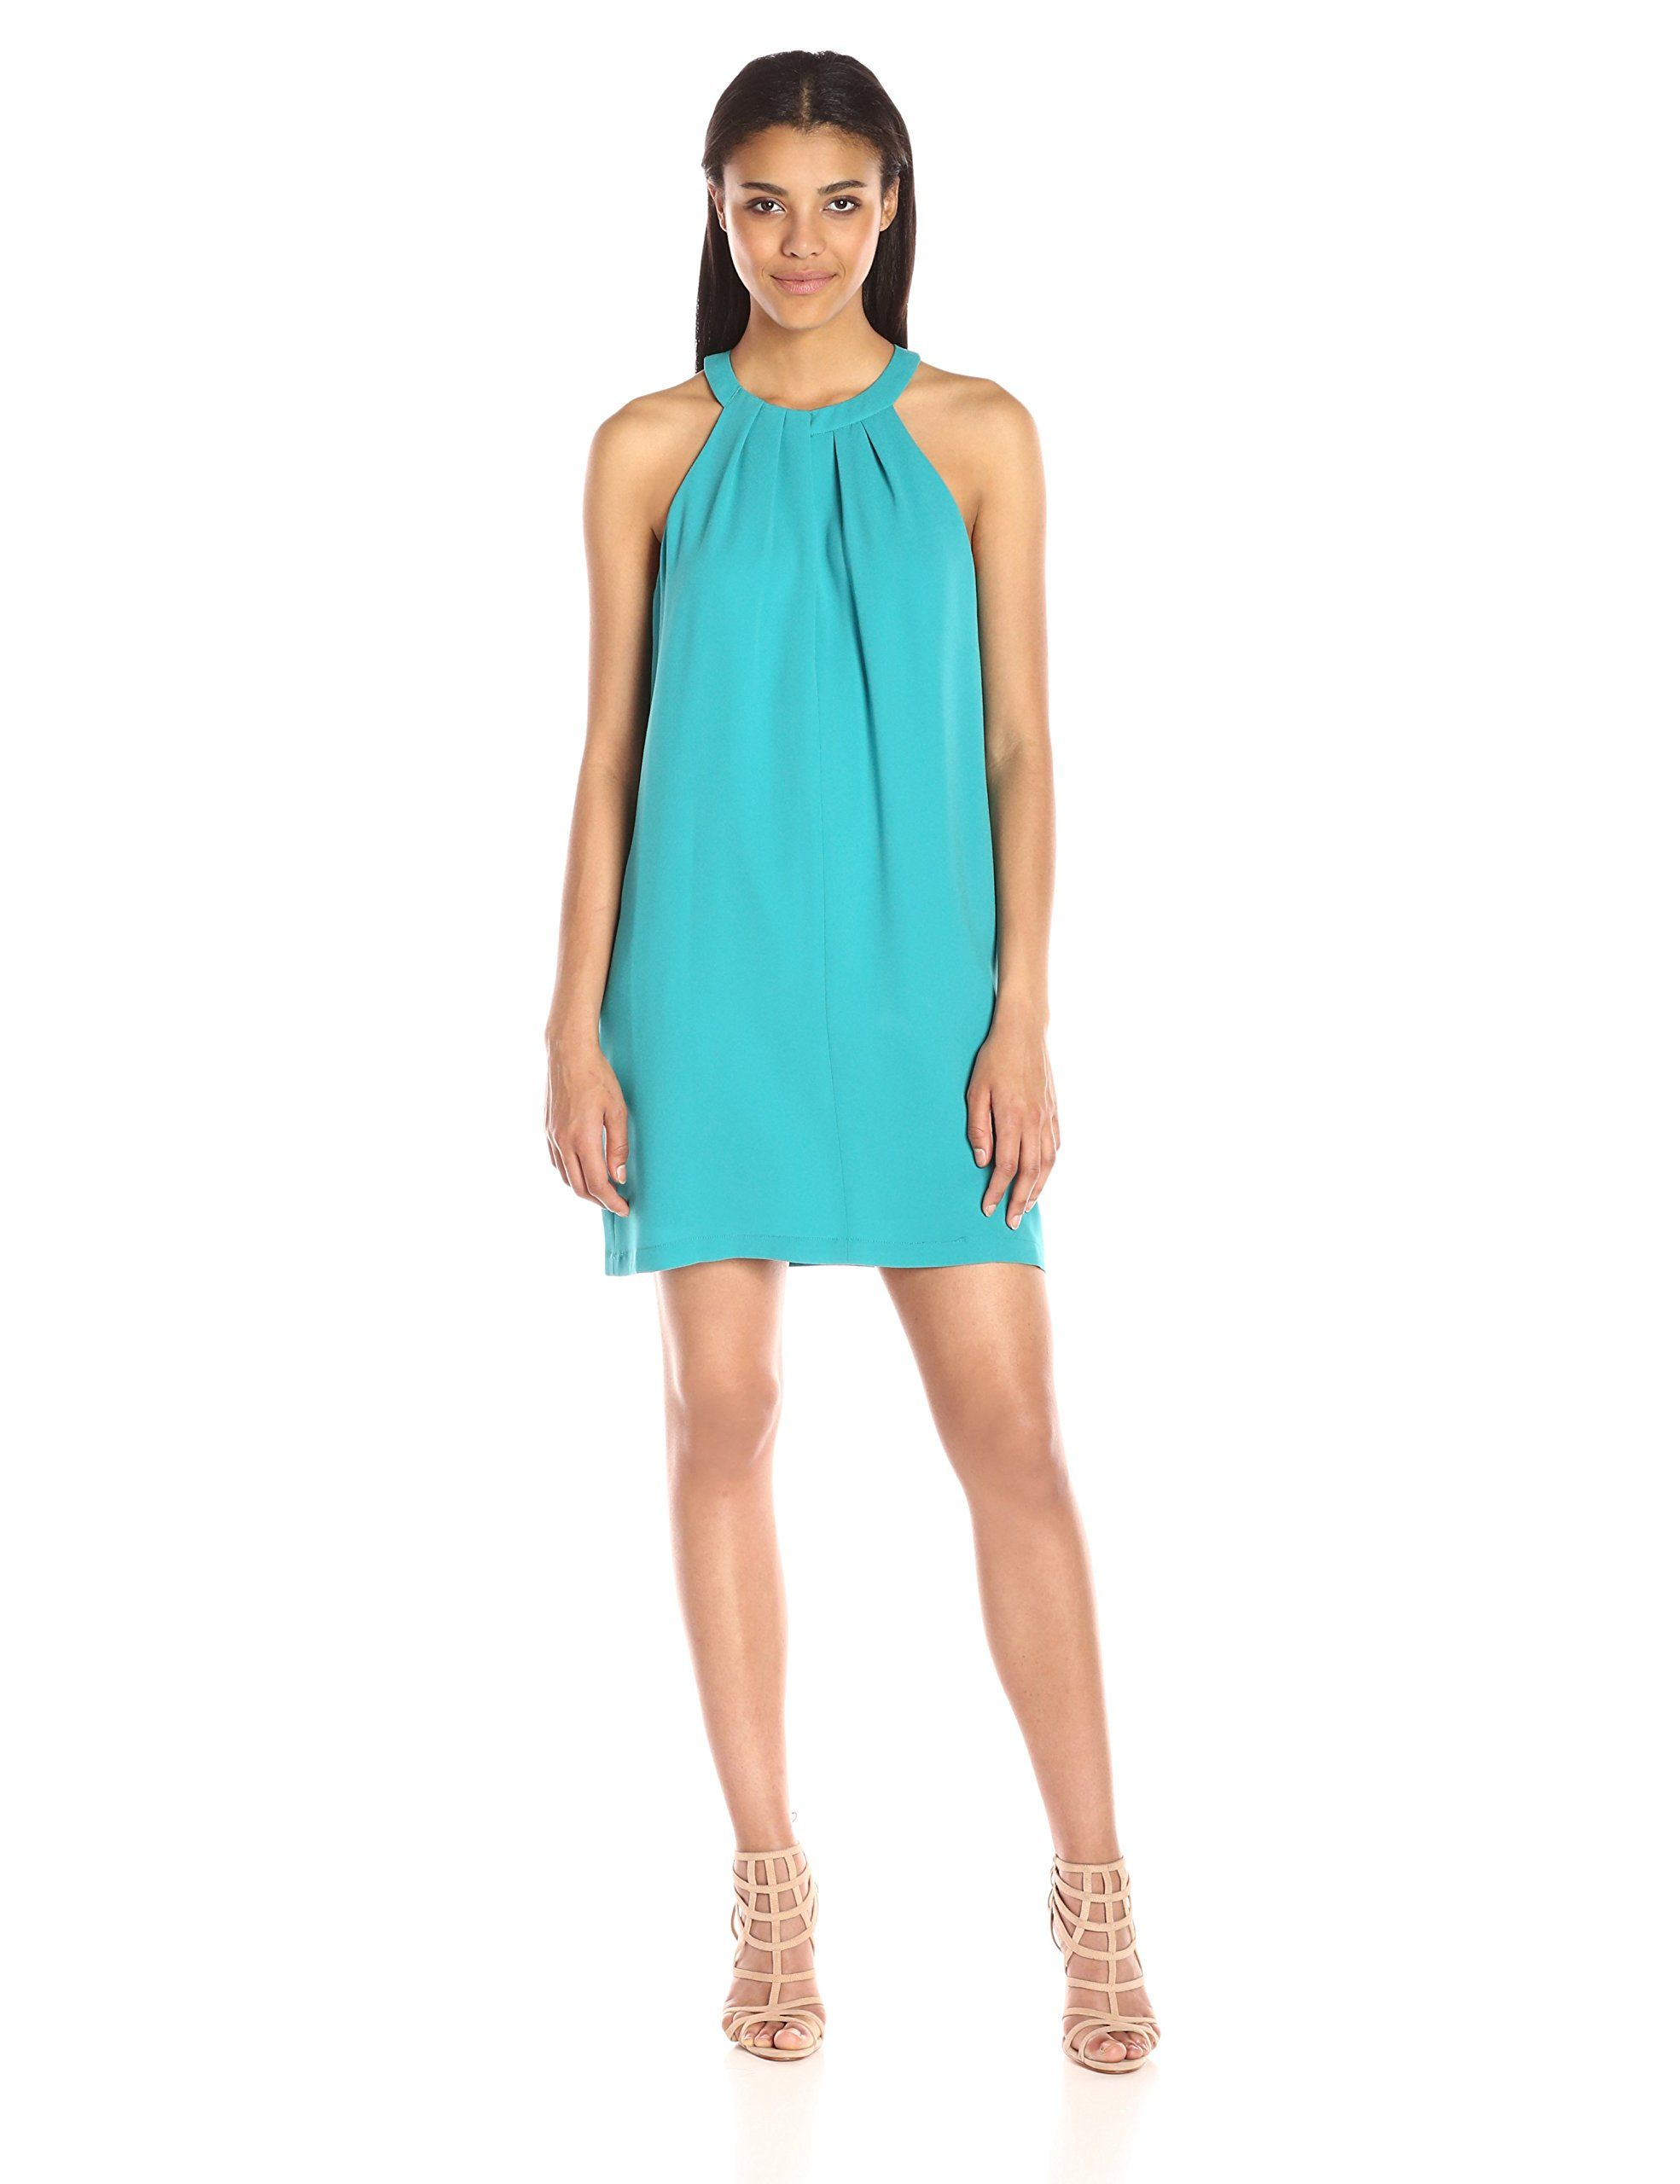 Bcbgmax azria womenus trisytn short halter dress with key hole